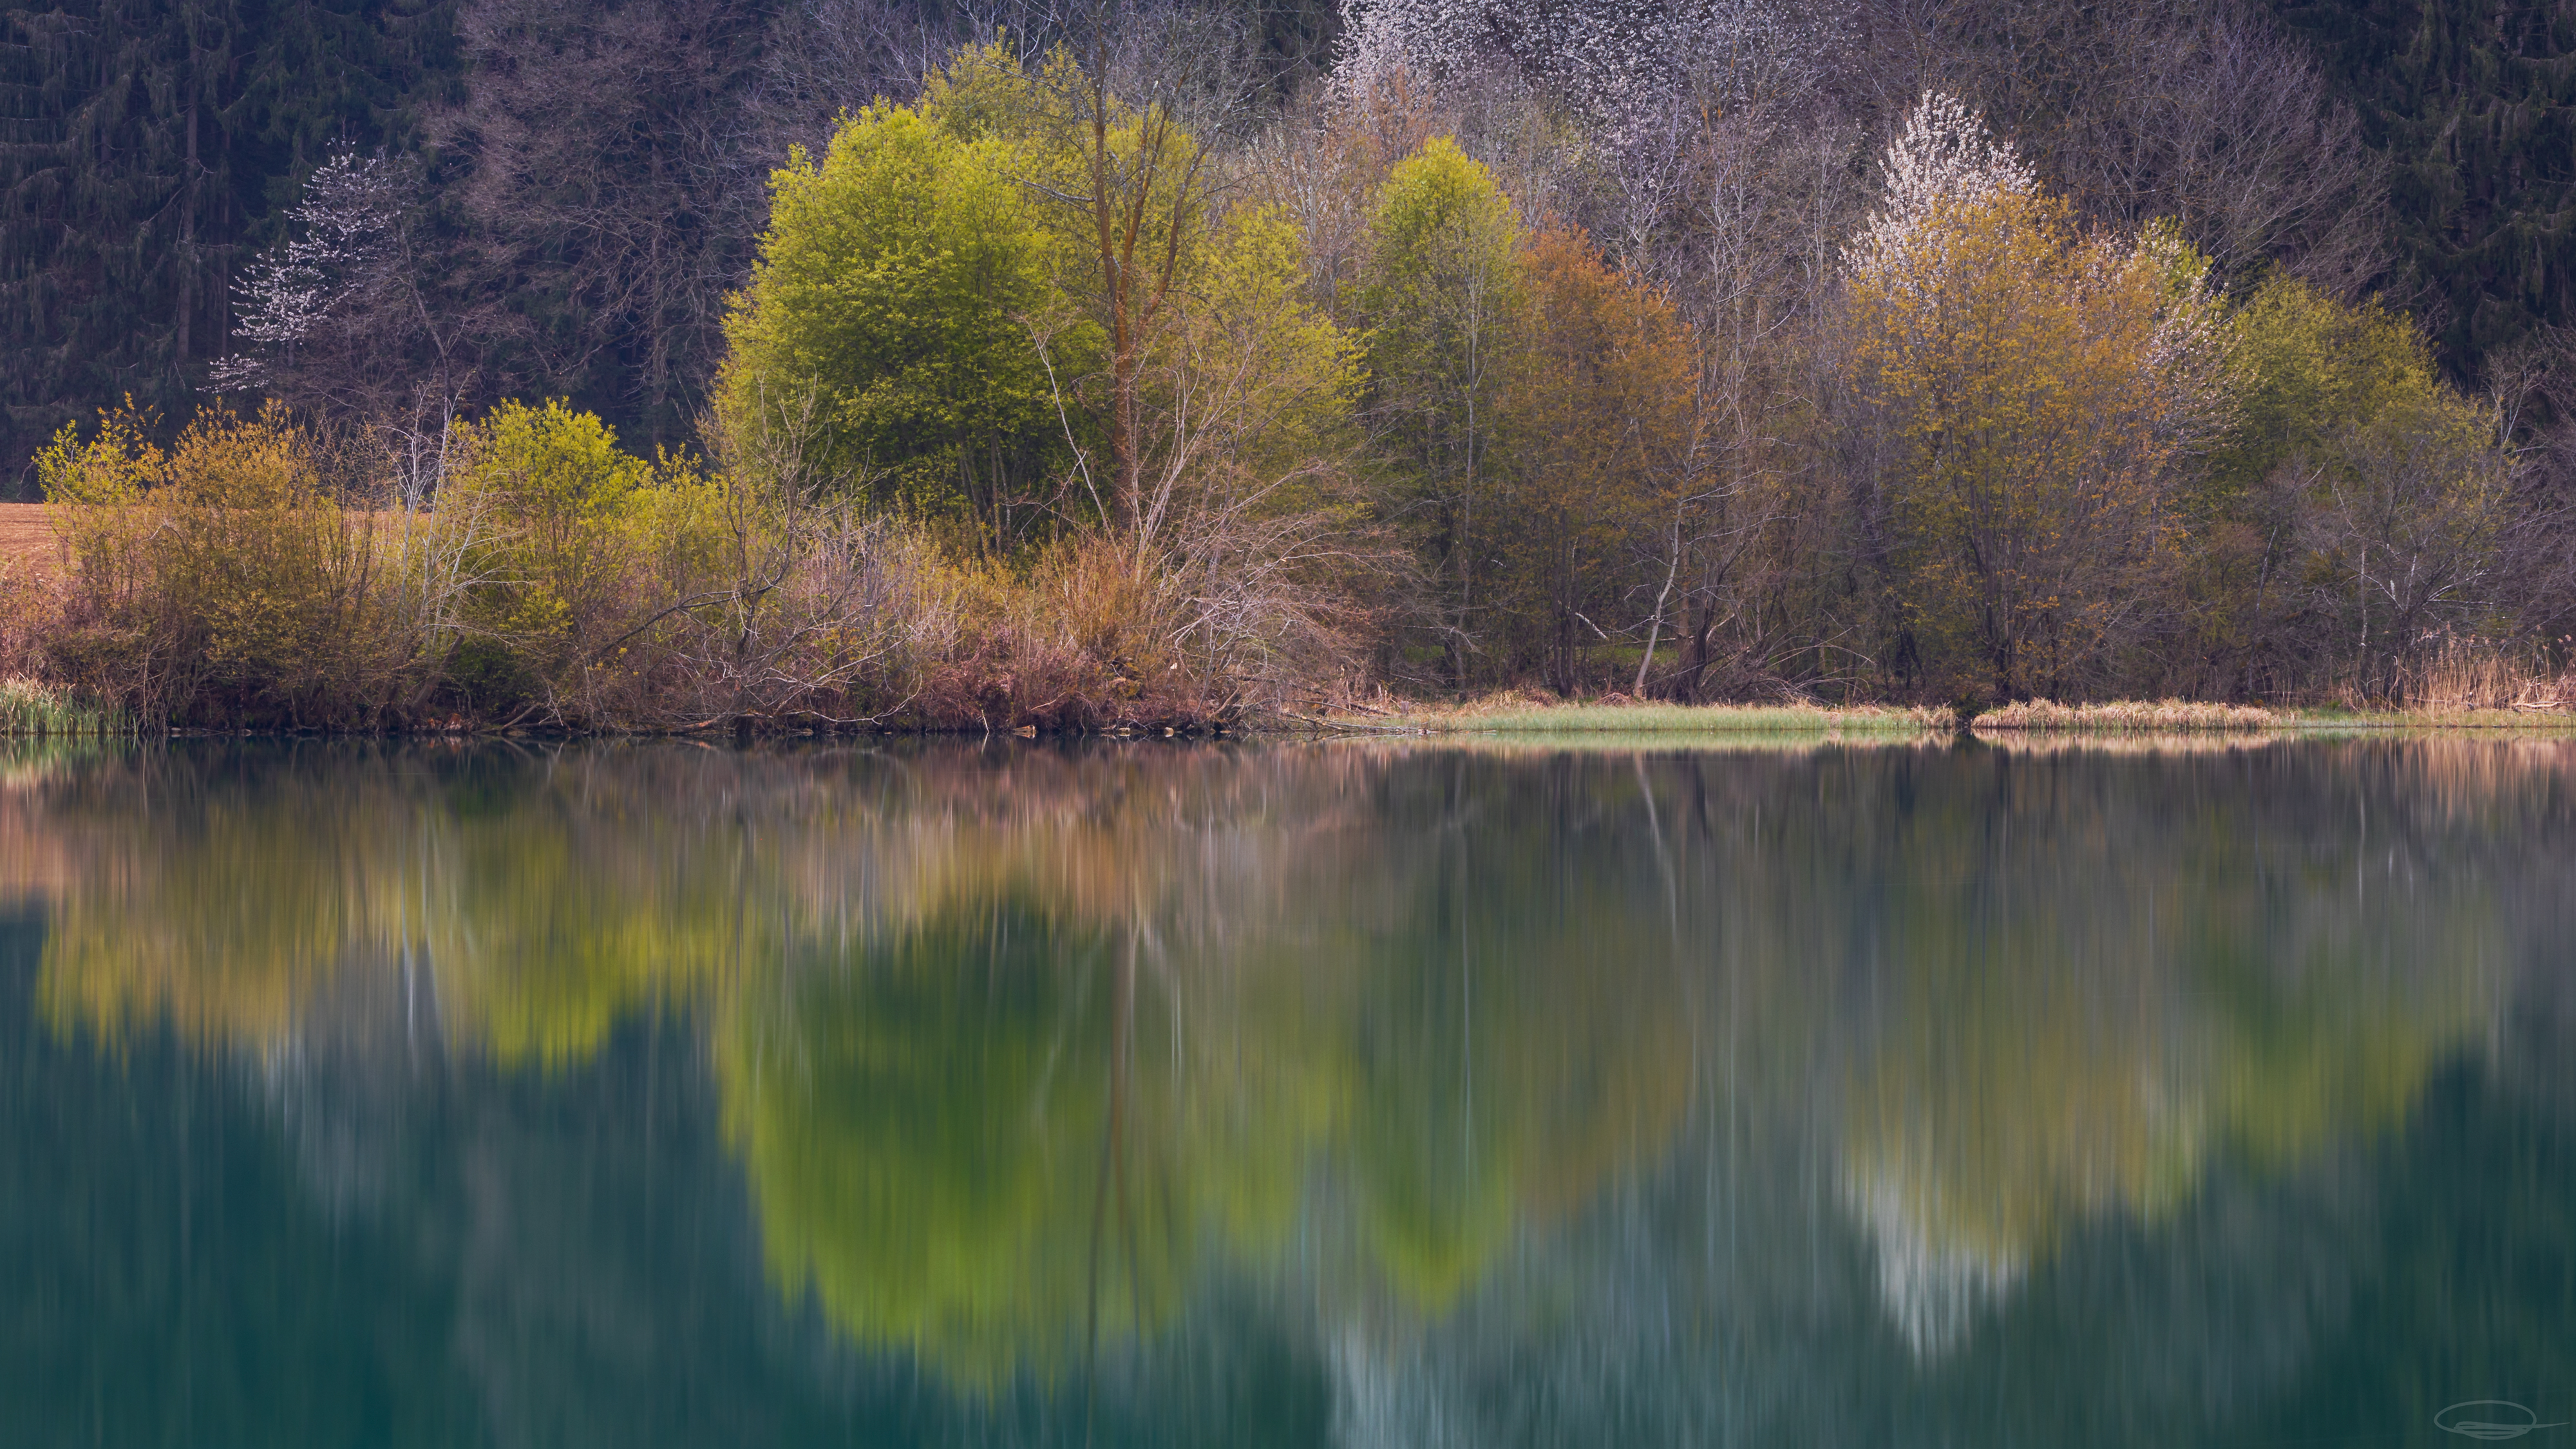 Springtime: New growth on the other side of the River